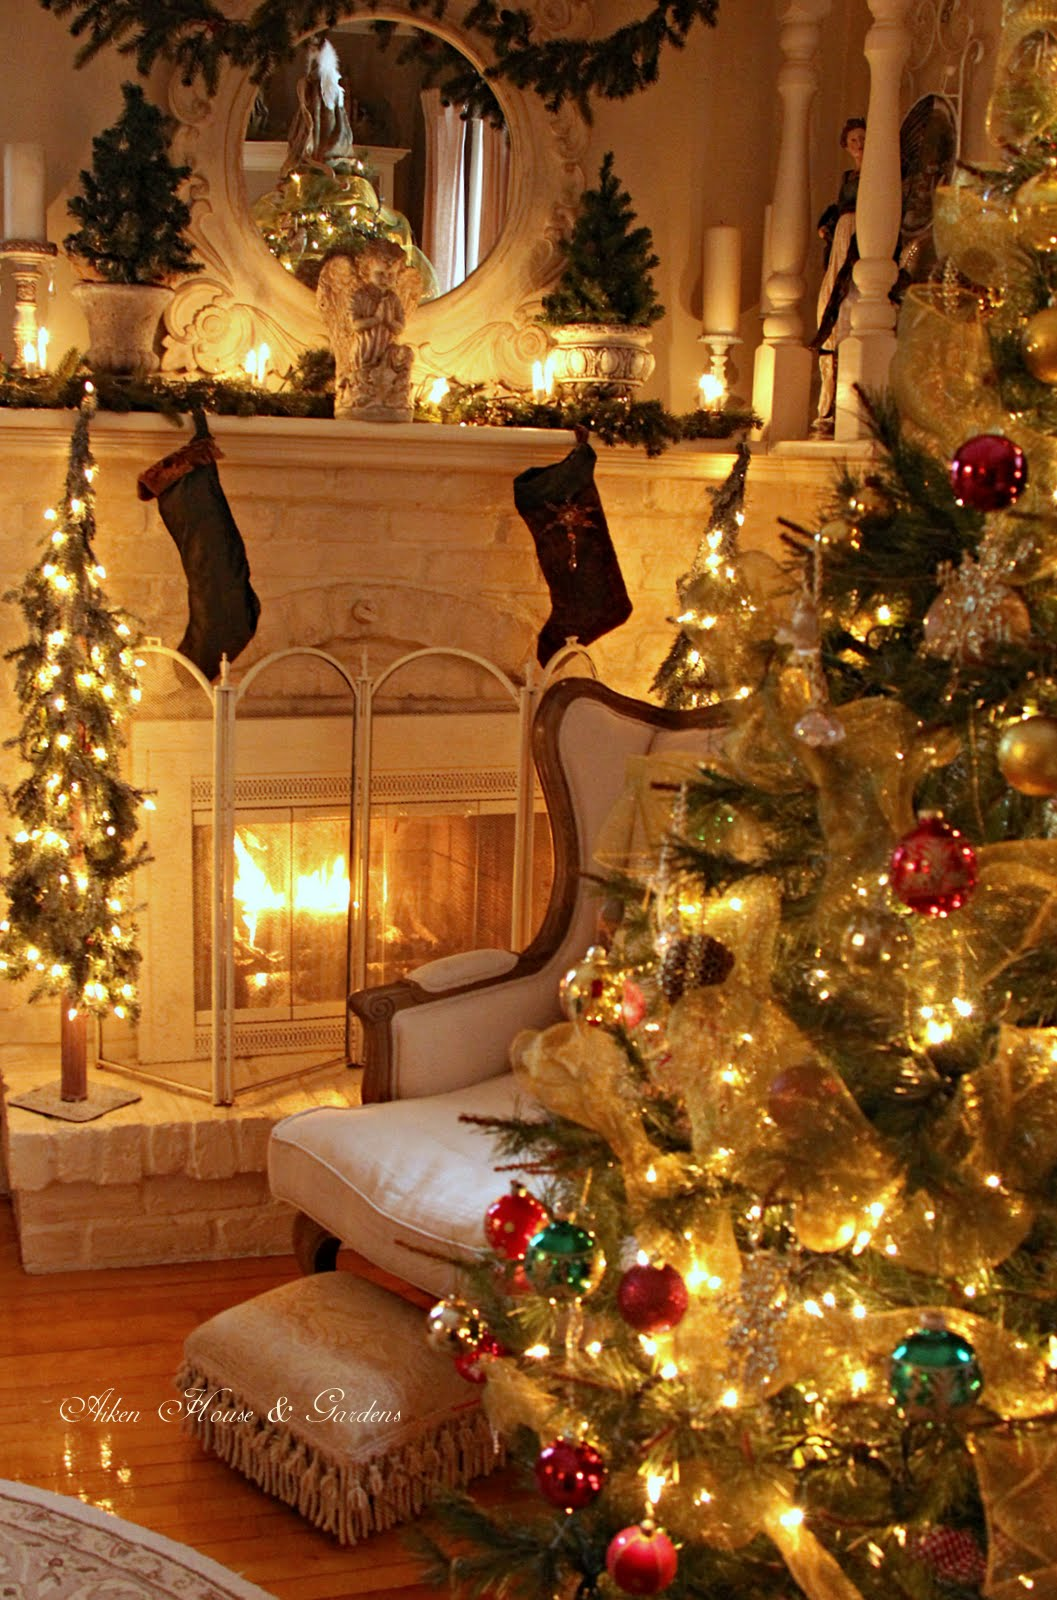 Decoration Cosy Aiken House And Gardens Warm And Cozy Christmas